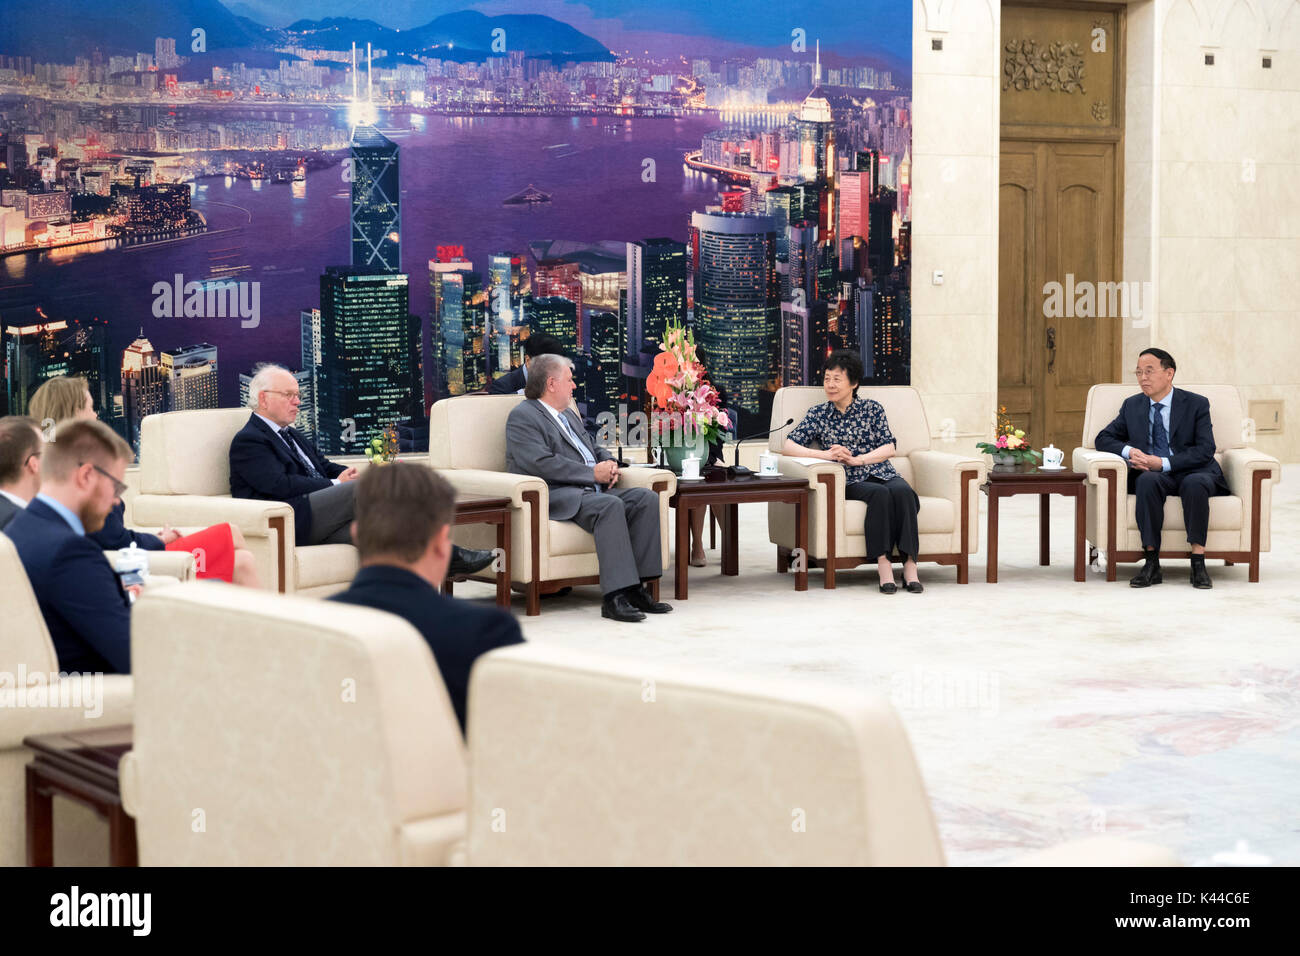 Beijing, China. 4th Sep, 2017. Yan Junqi (2nd R), vice chairwoman of the Standing Committee of China's National People's Congress, meets with Kurt Beck, former chairman of Germany's Social Democratic Party and also chairman of Friedrich-Ebert-Stiftung (FES), at the Great Hall of the People in Beijing, capital of China, Sept. 4, 2017. Credit: Ding Haitao/Xinhua/Alamy Live News Stock Photo